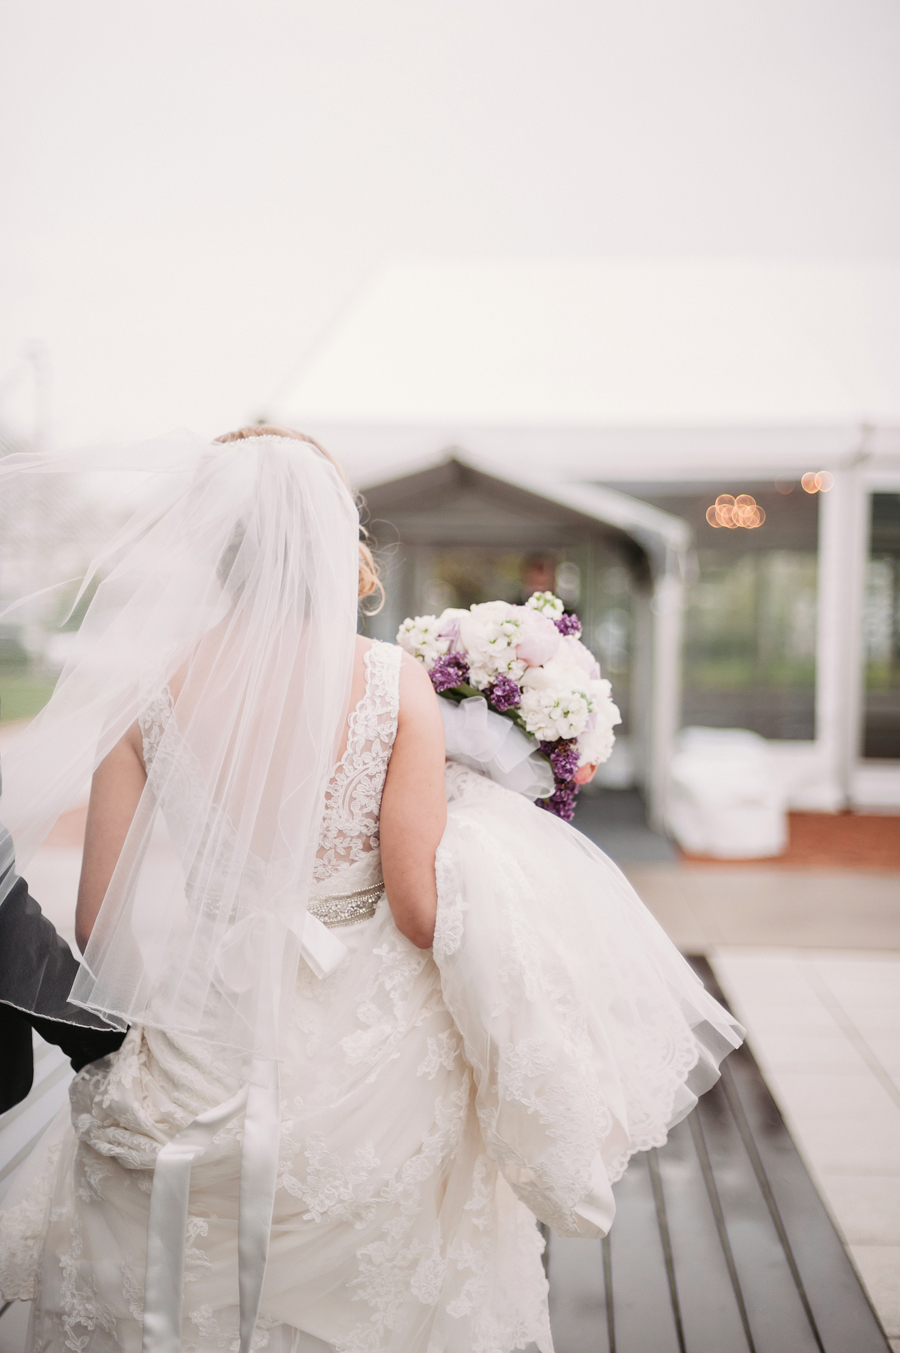 Misty Milwaukee Wedding at Discovery World by Chicago Photographers Two Birds Photography025